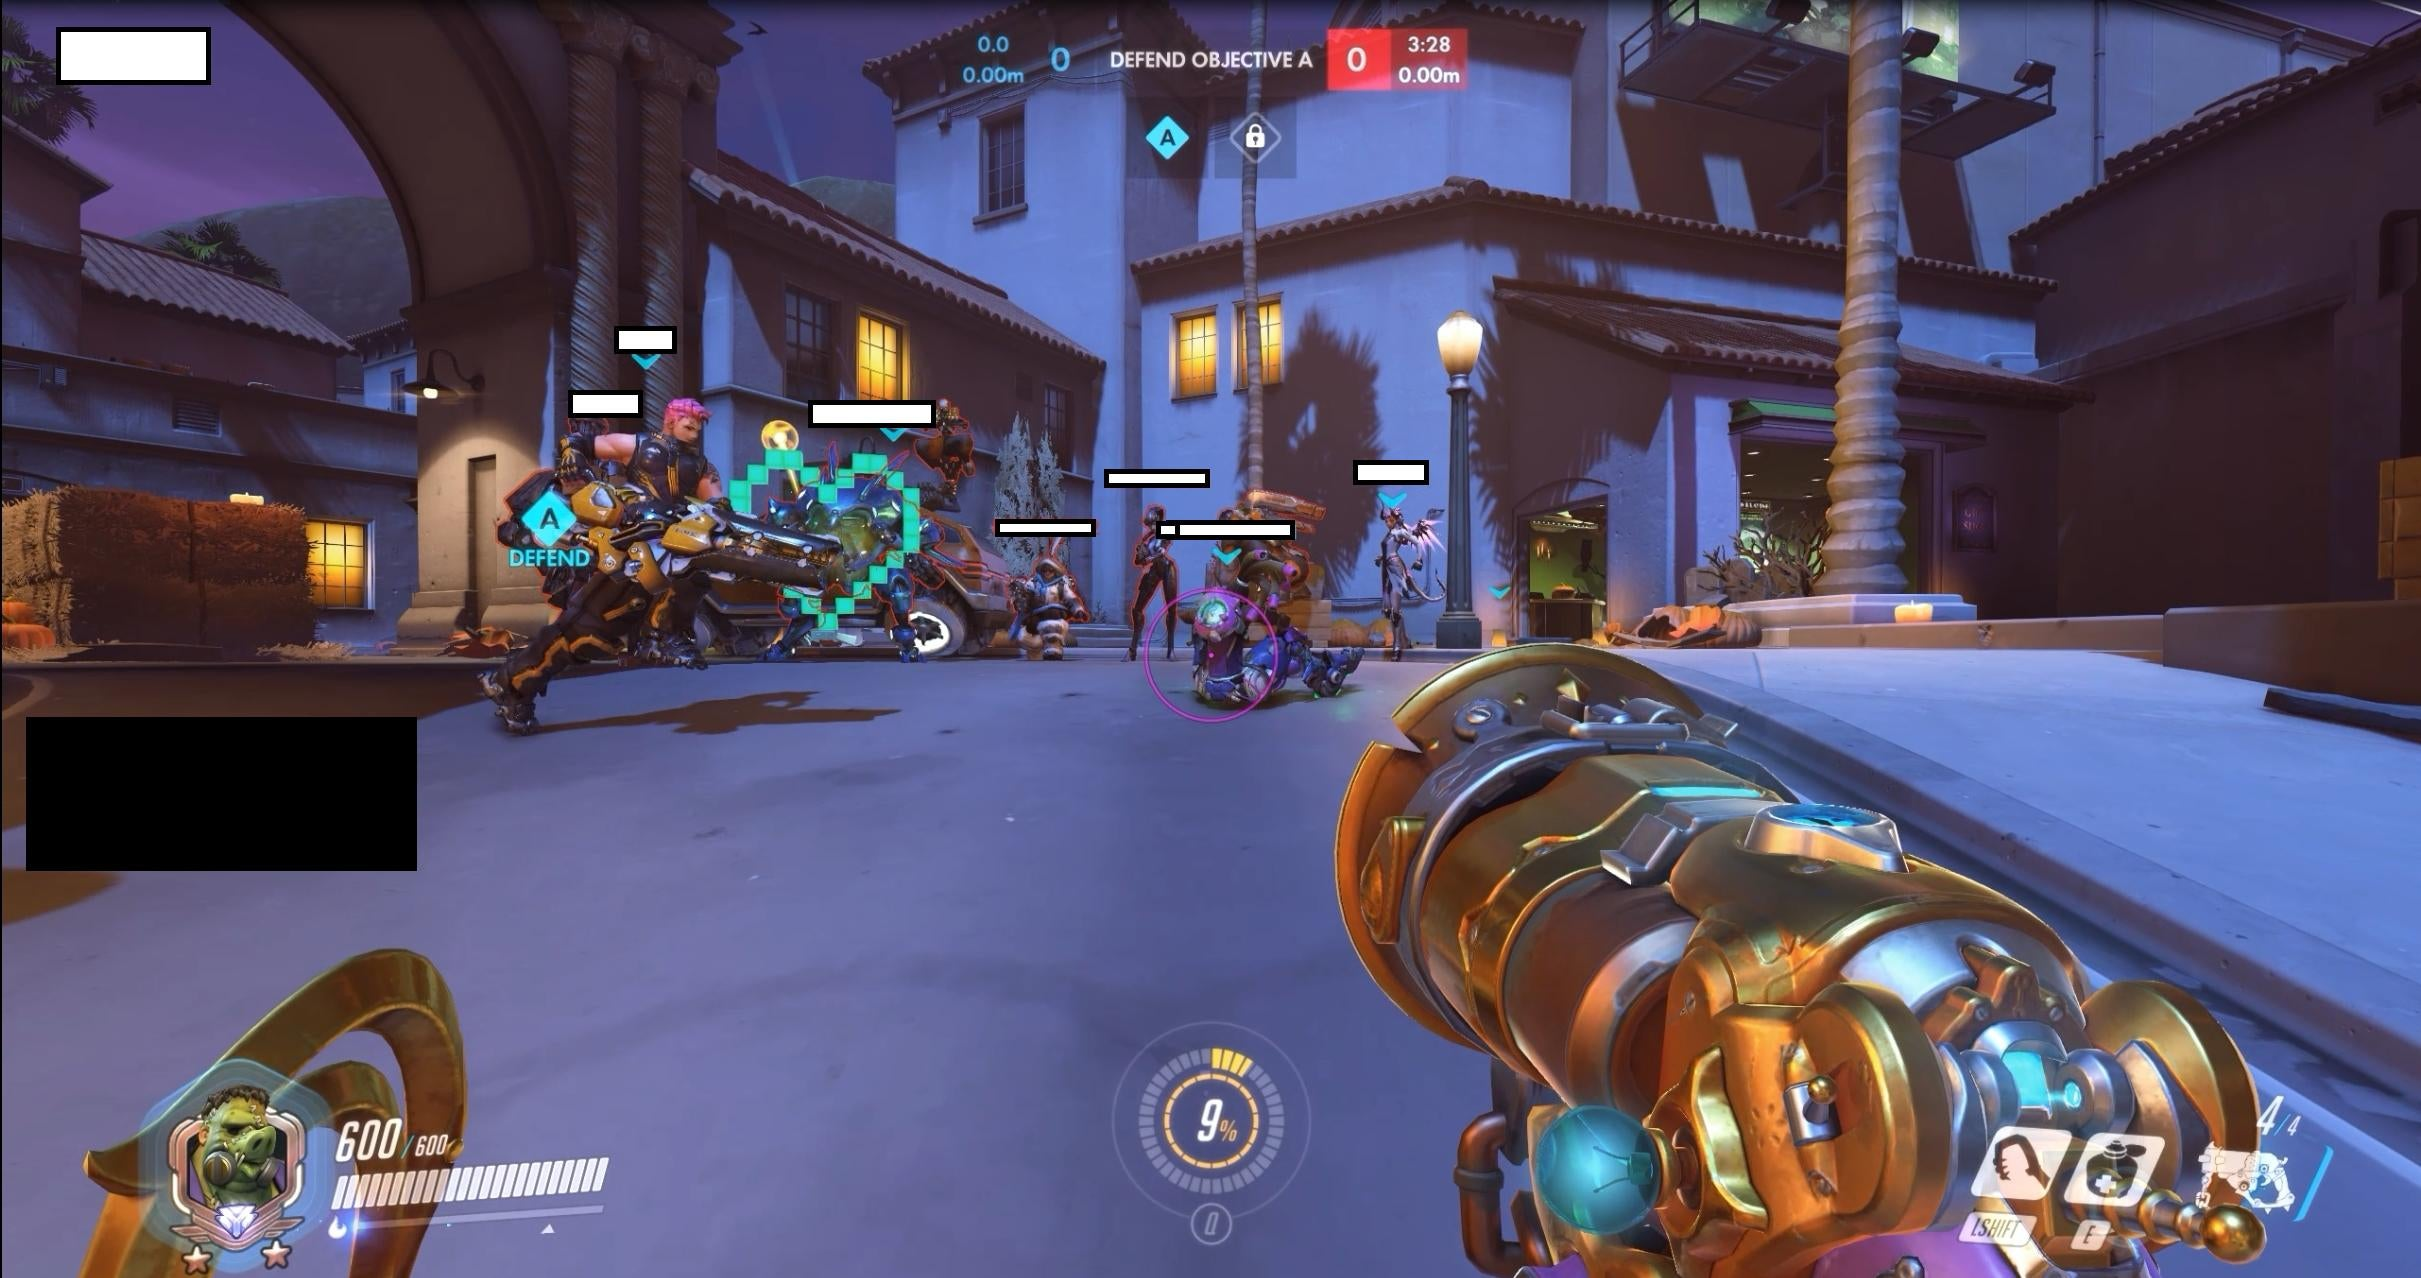 Overwatch Teams Stop Fighting Each Other To Thwart Cheater